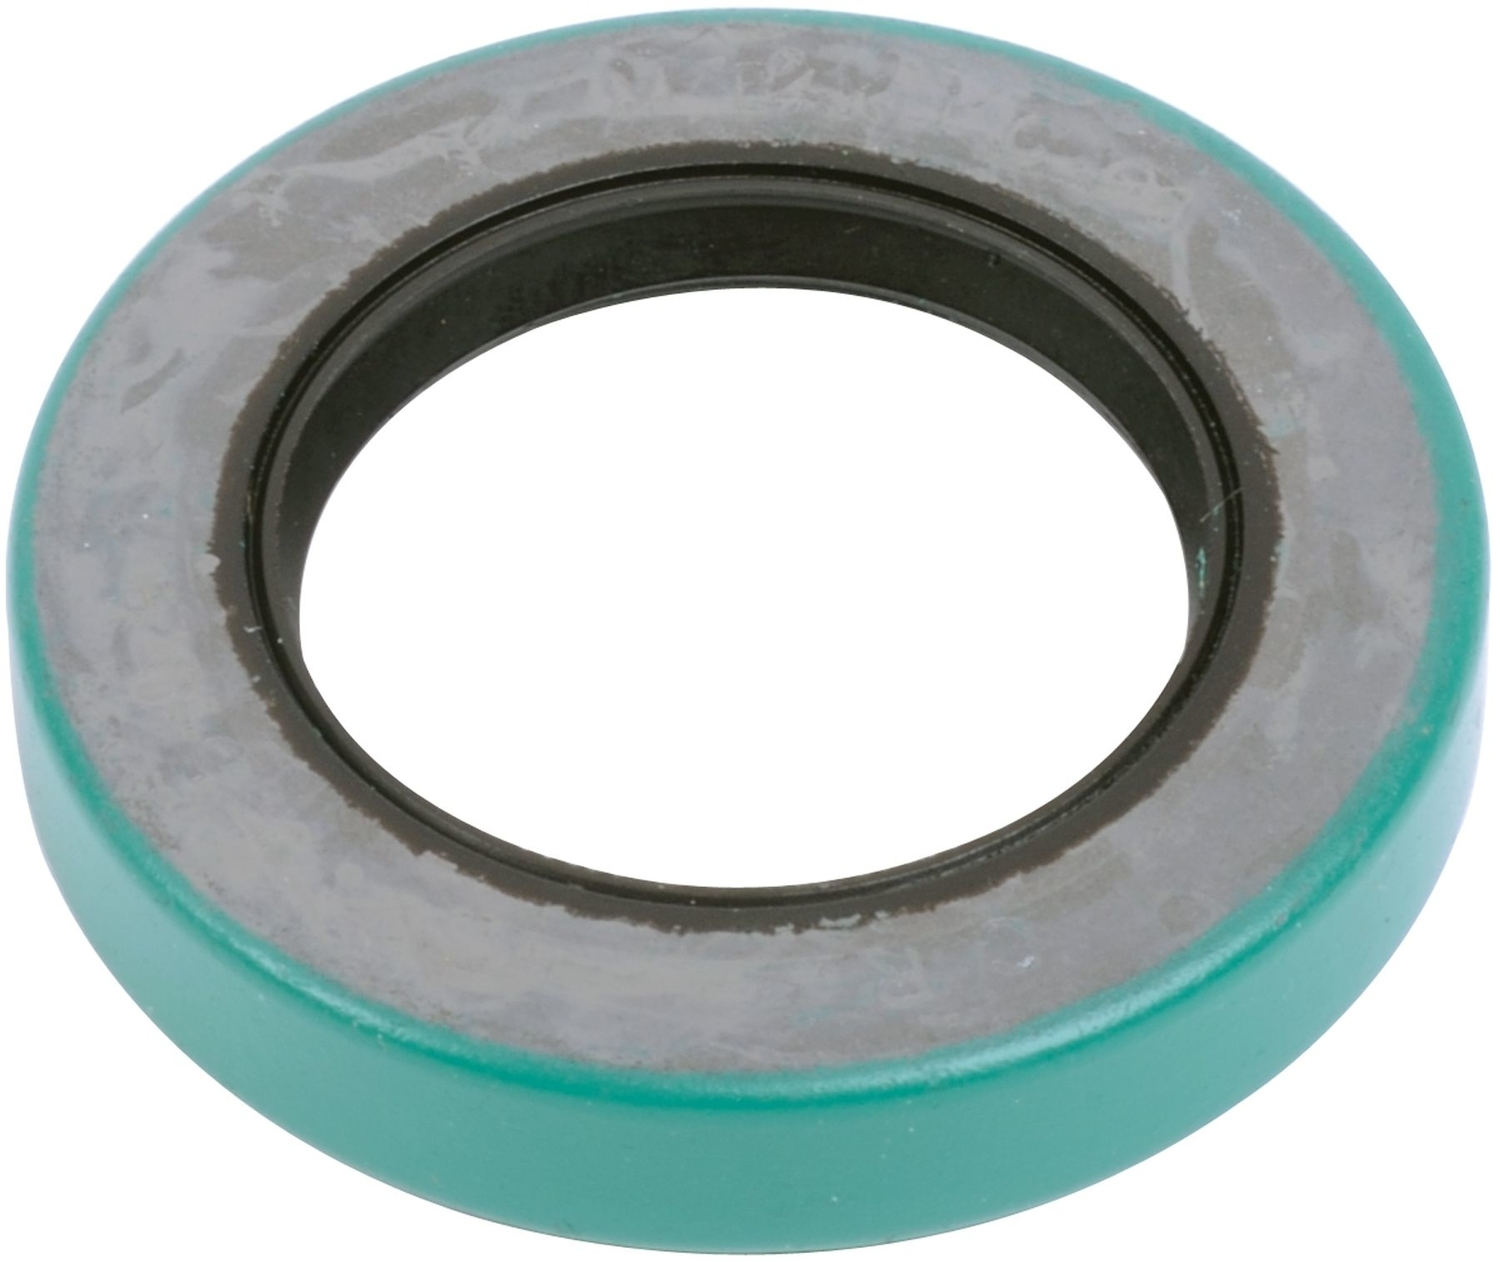 SKF (CHICAGO RAWHIDE) - Transfer Case Output Shaft Seal - SKF 15041